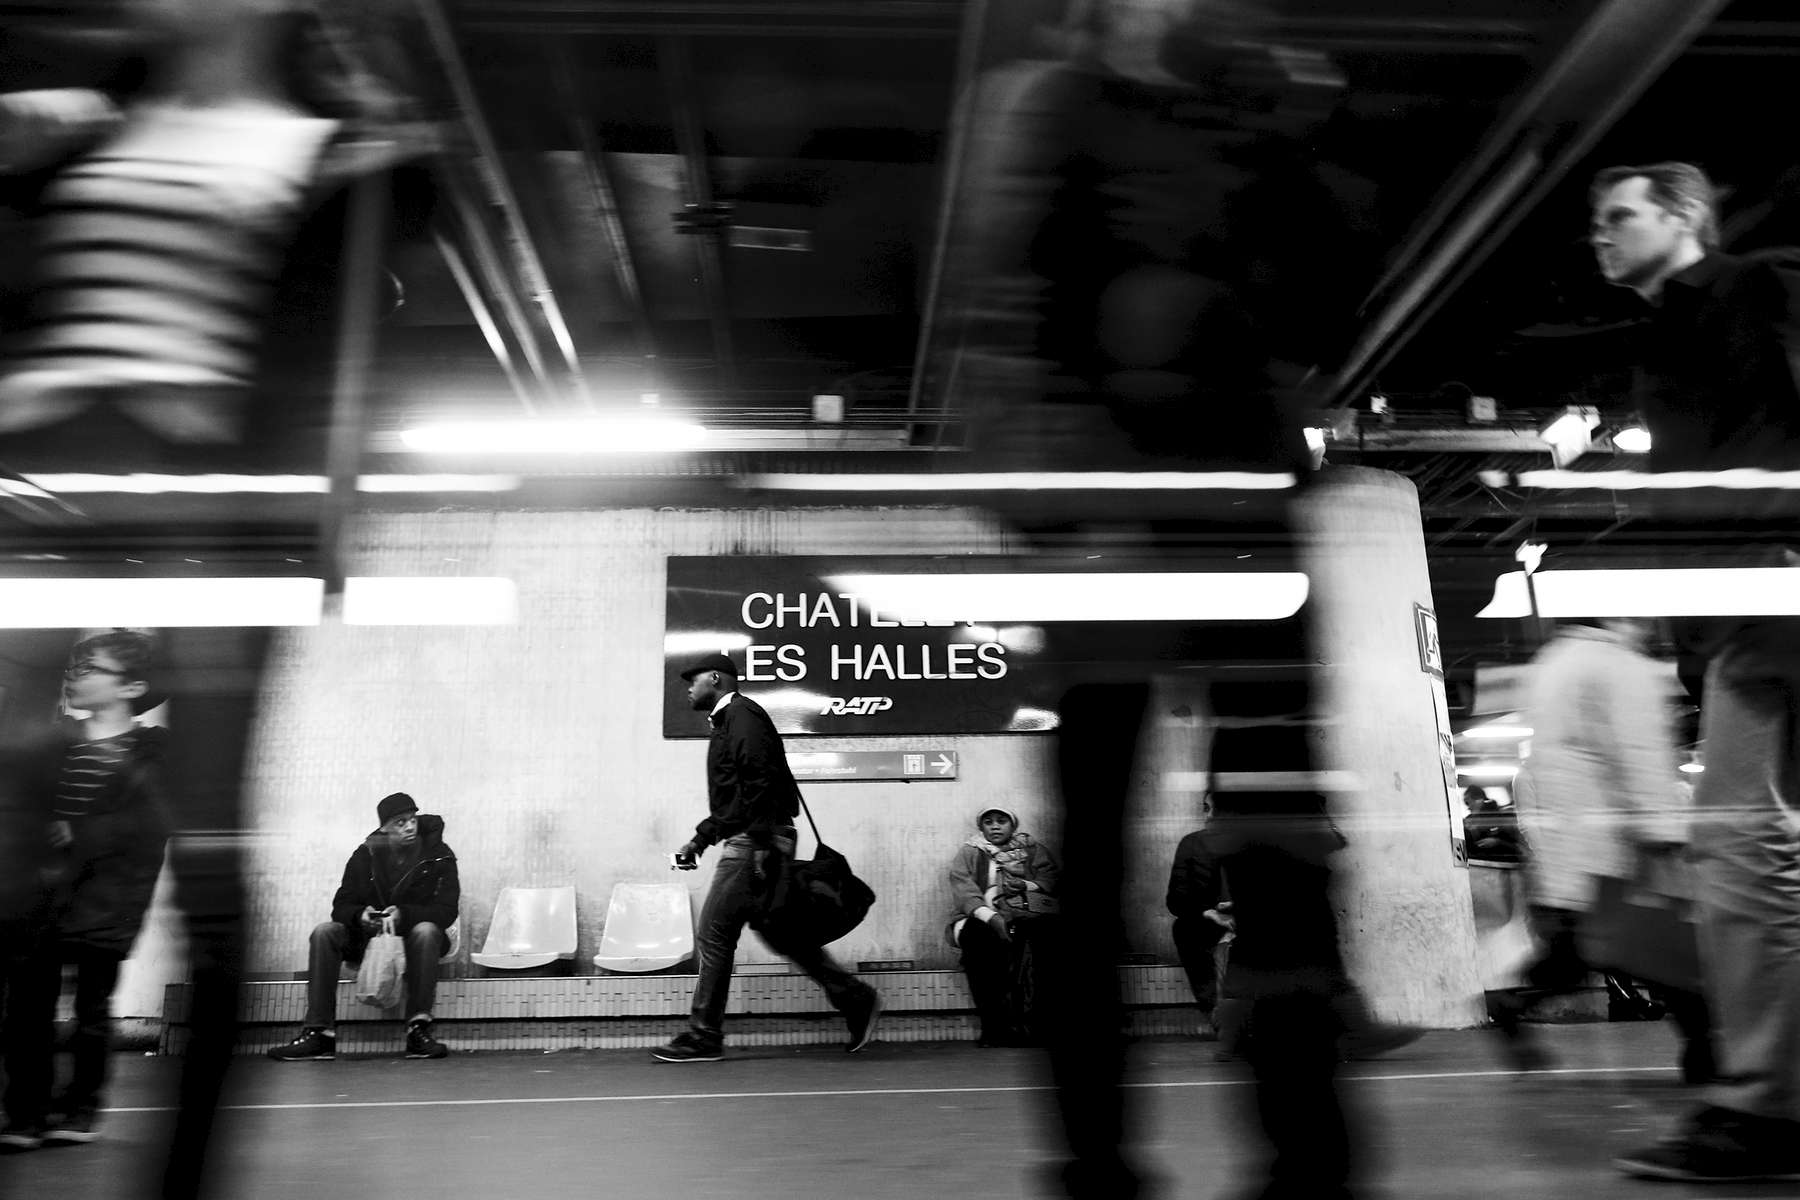 People were for the RER, an express train line that deserves Paris and its suburbs, at the central and always  busy station, Chatelet - les Halles, on December 24, 2015, Paris, France. A bomb exploded in 1986 in the large mall build around this train station, 22 people were injured but nobody was killed in this attack, attributed to the Hezbollah.